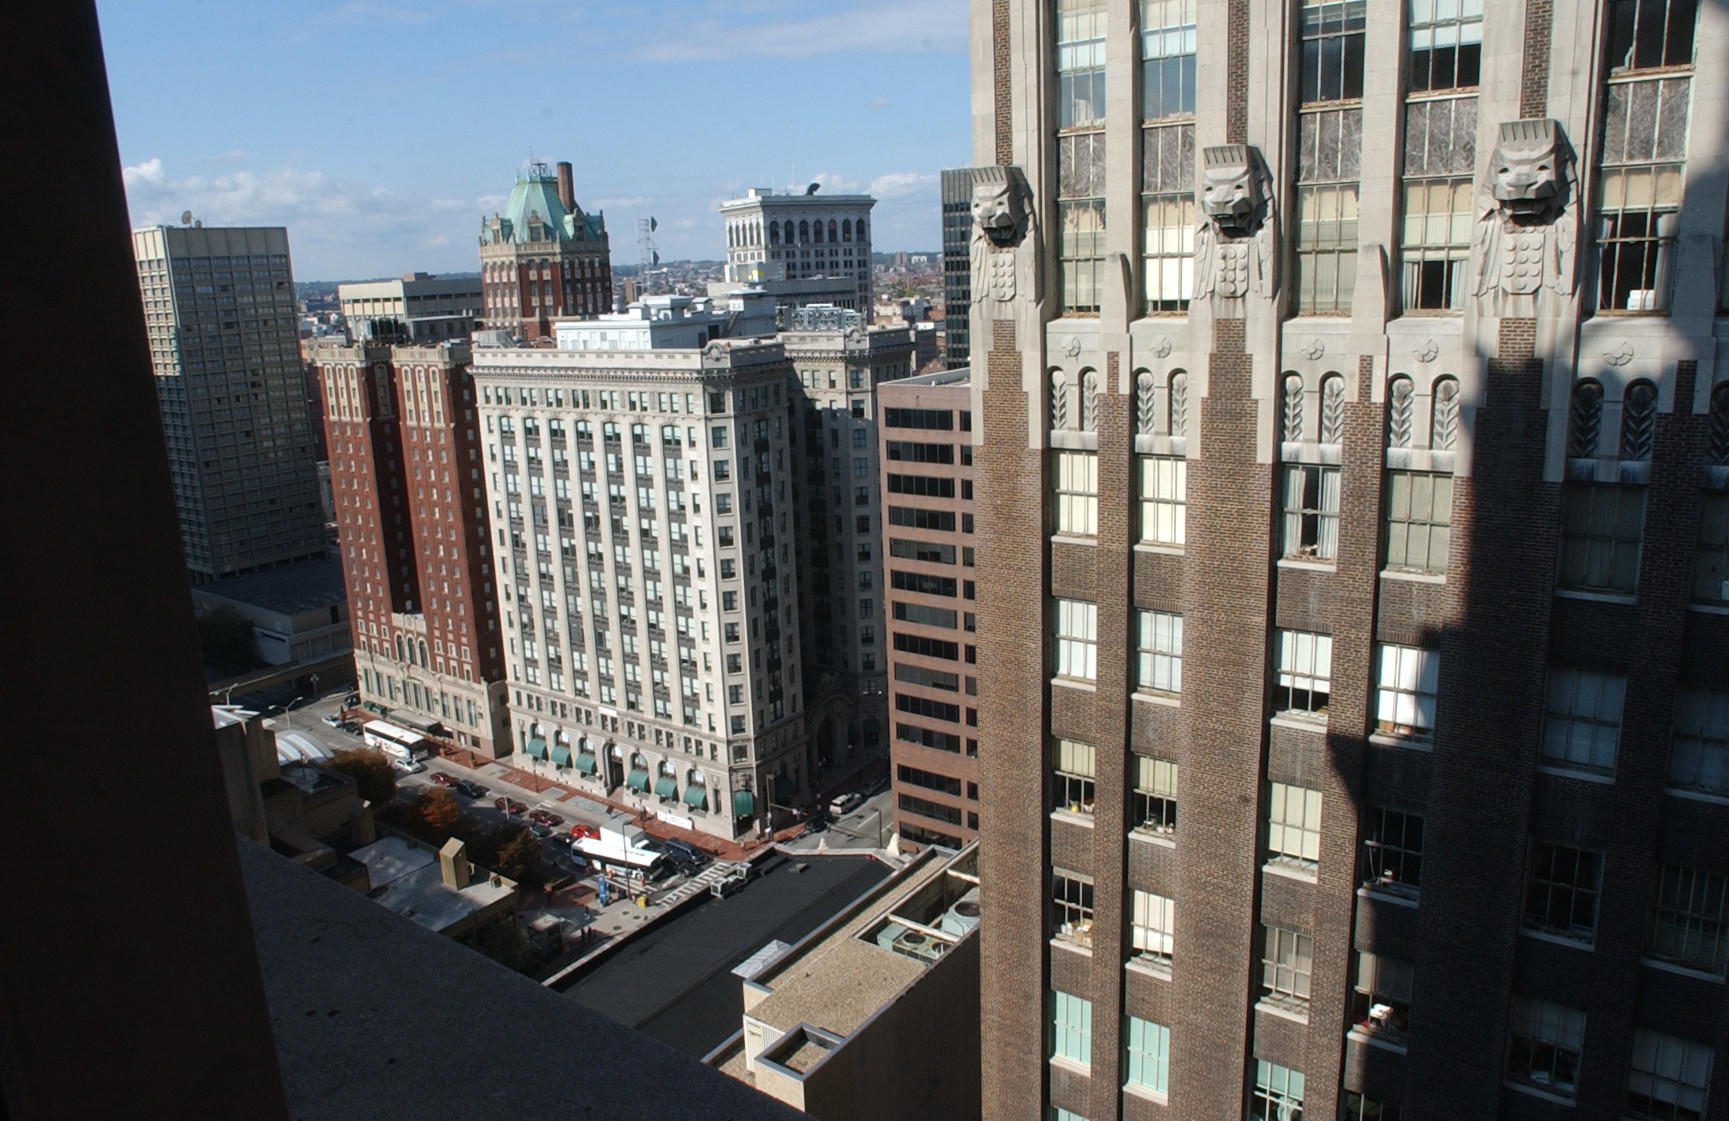 Lord baltimore hotel celebrates renovation for Lord of baltimore hotel